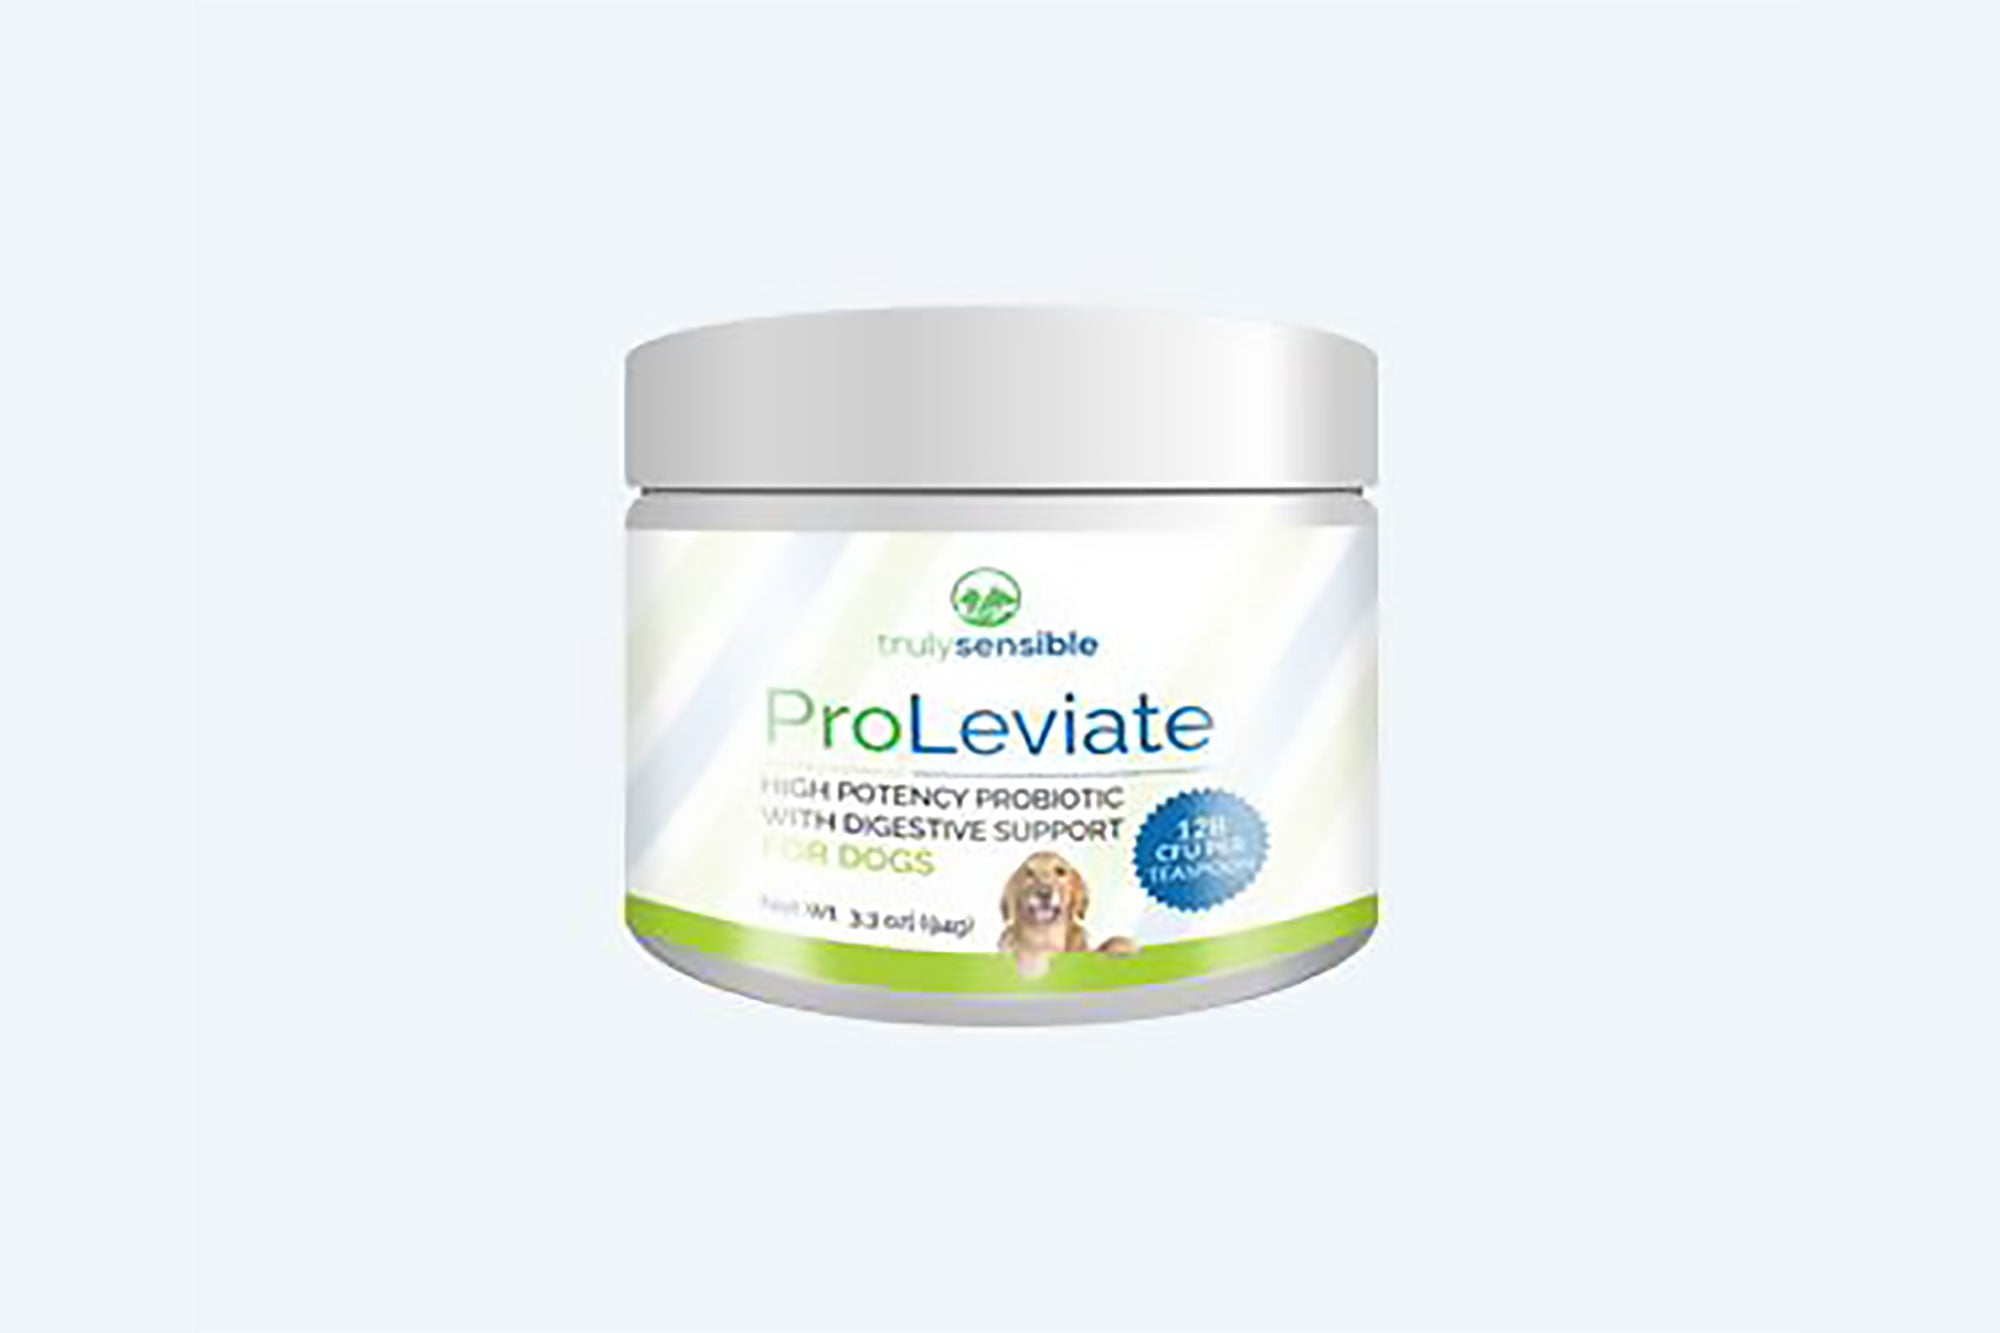 ProLeviate: The Potent Probiotic For Your Dog